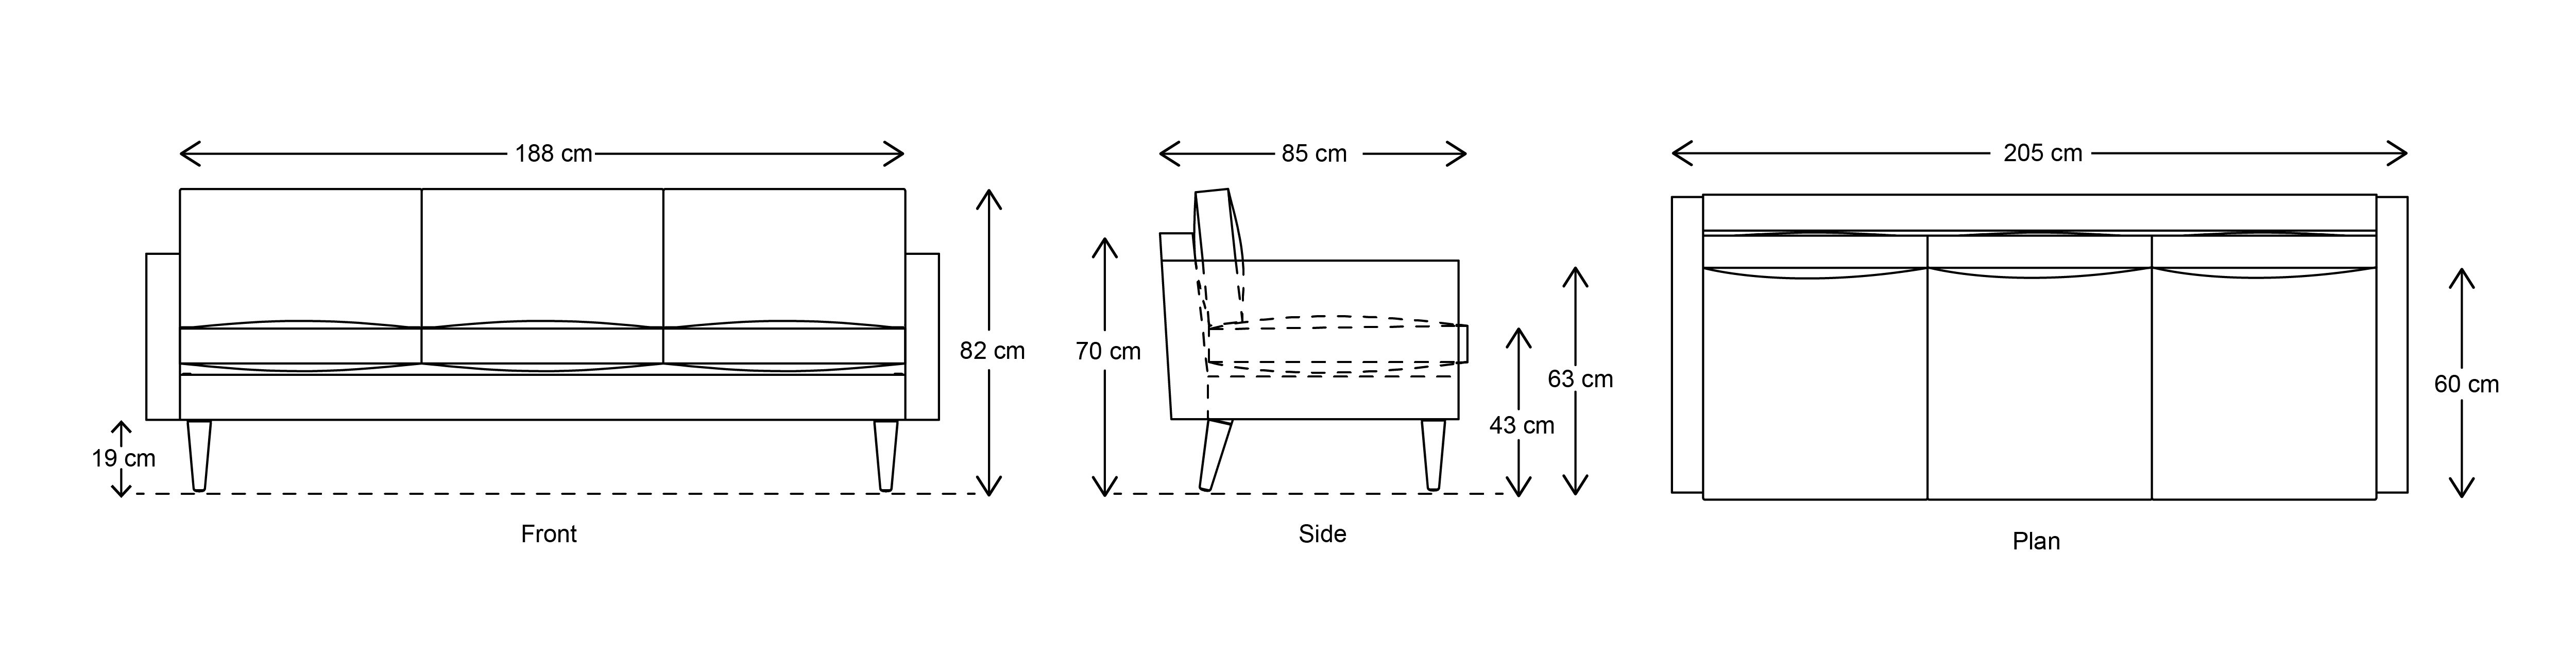 Model 01 3 Seater Dimensions drawing